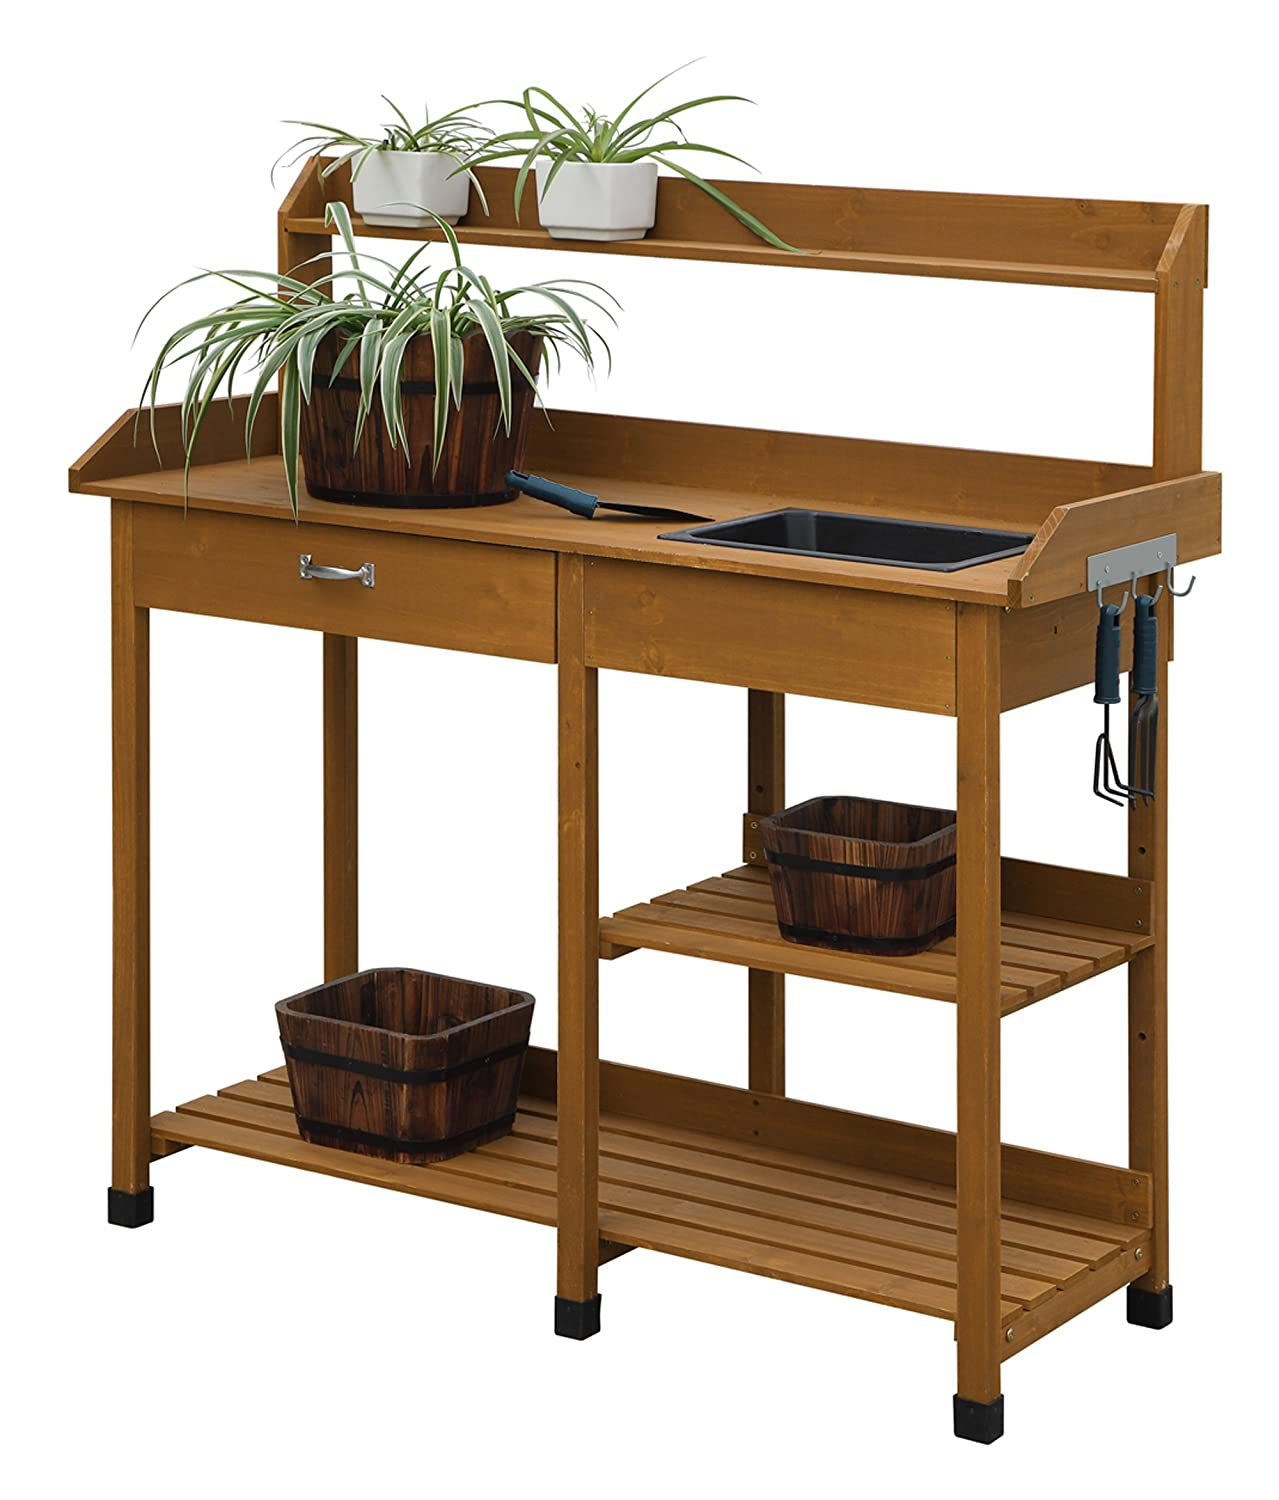 Amazon.com : Convenience Concepts Deluxe Potting Bench, Light Oak : Garden  U0026 Outdoor